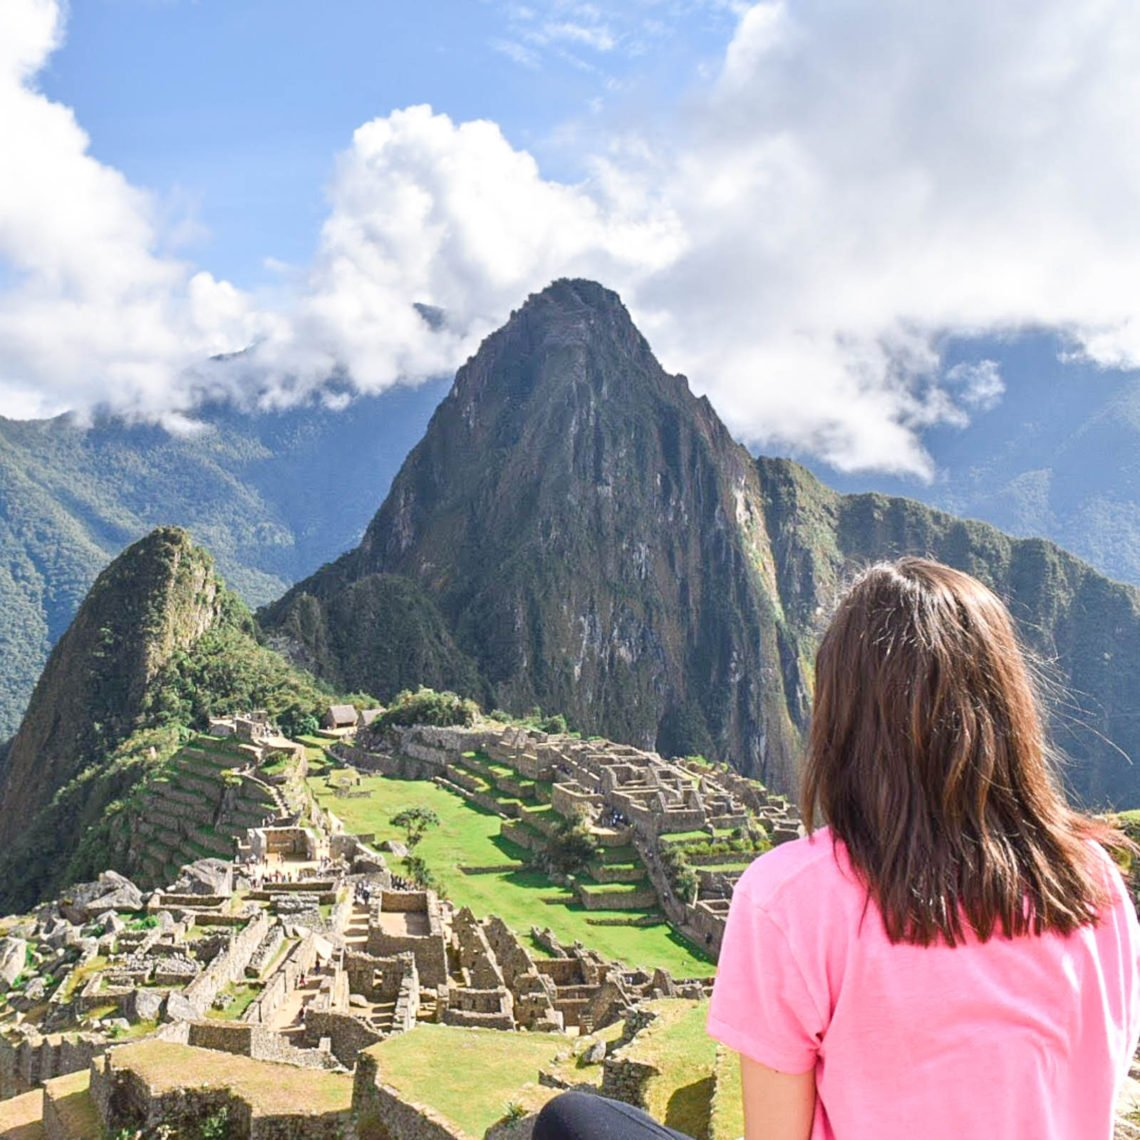 In this post, we'll talk about the best times to visit Peru. This will take into account the best time to visit Machu Picchu, Cusco, the Amazon, and Lima. #peru #visitperu #machupicchu #cusco #amazon #lima